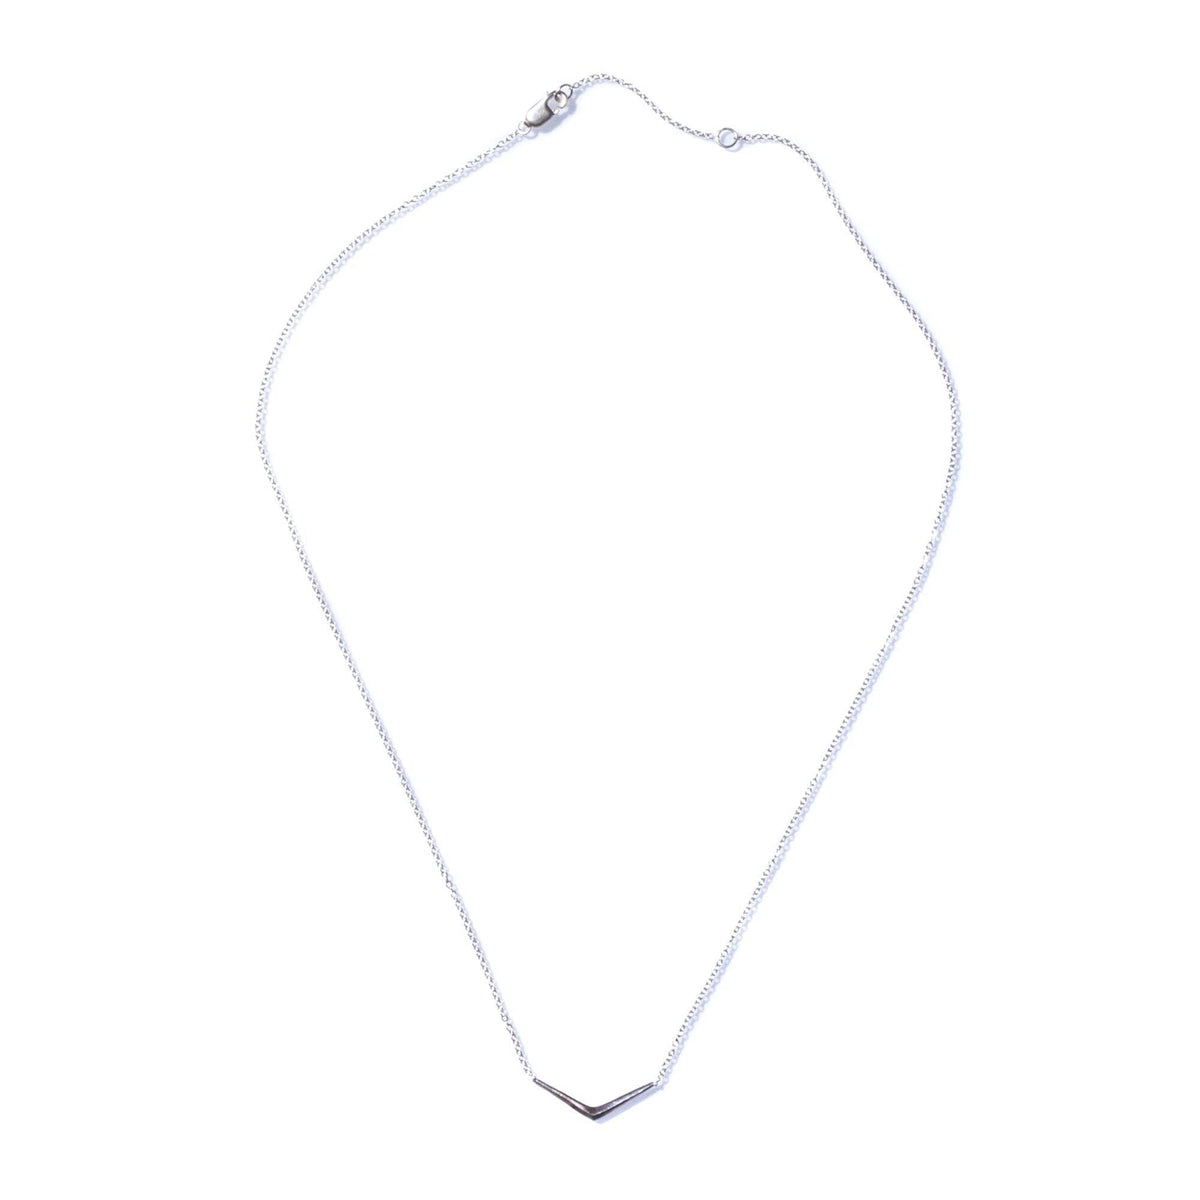 PETITE RAY NECKLACE STERLING